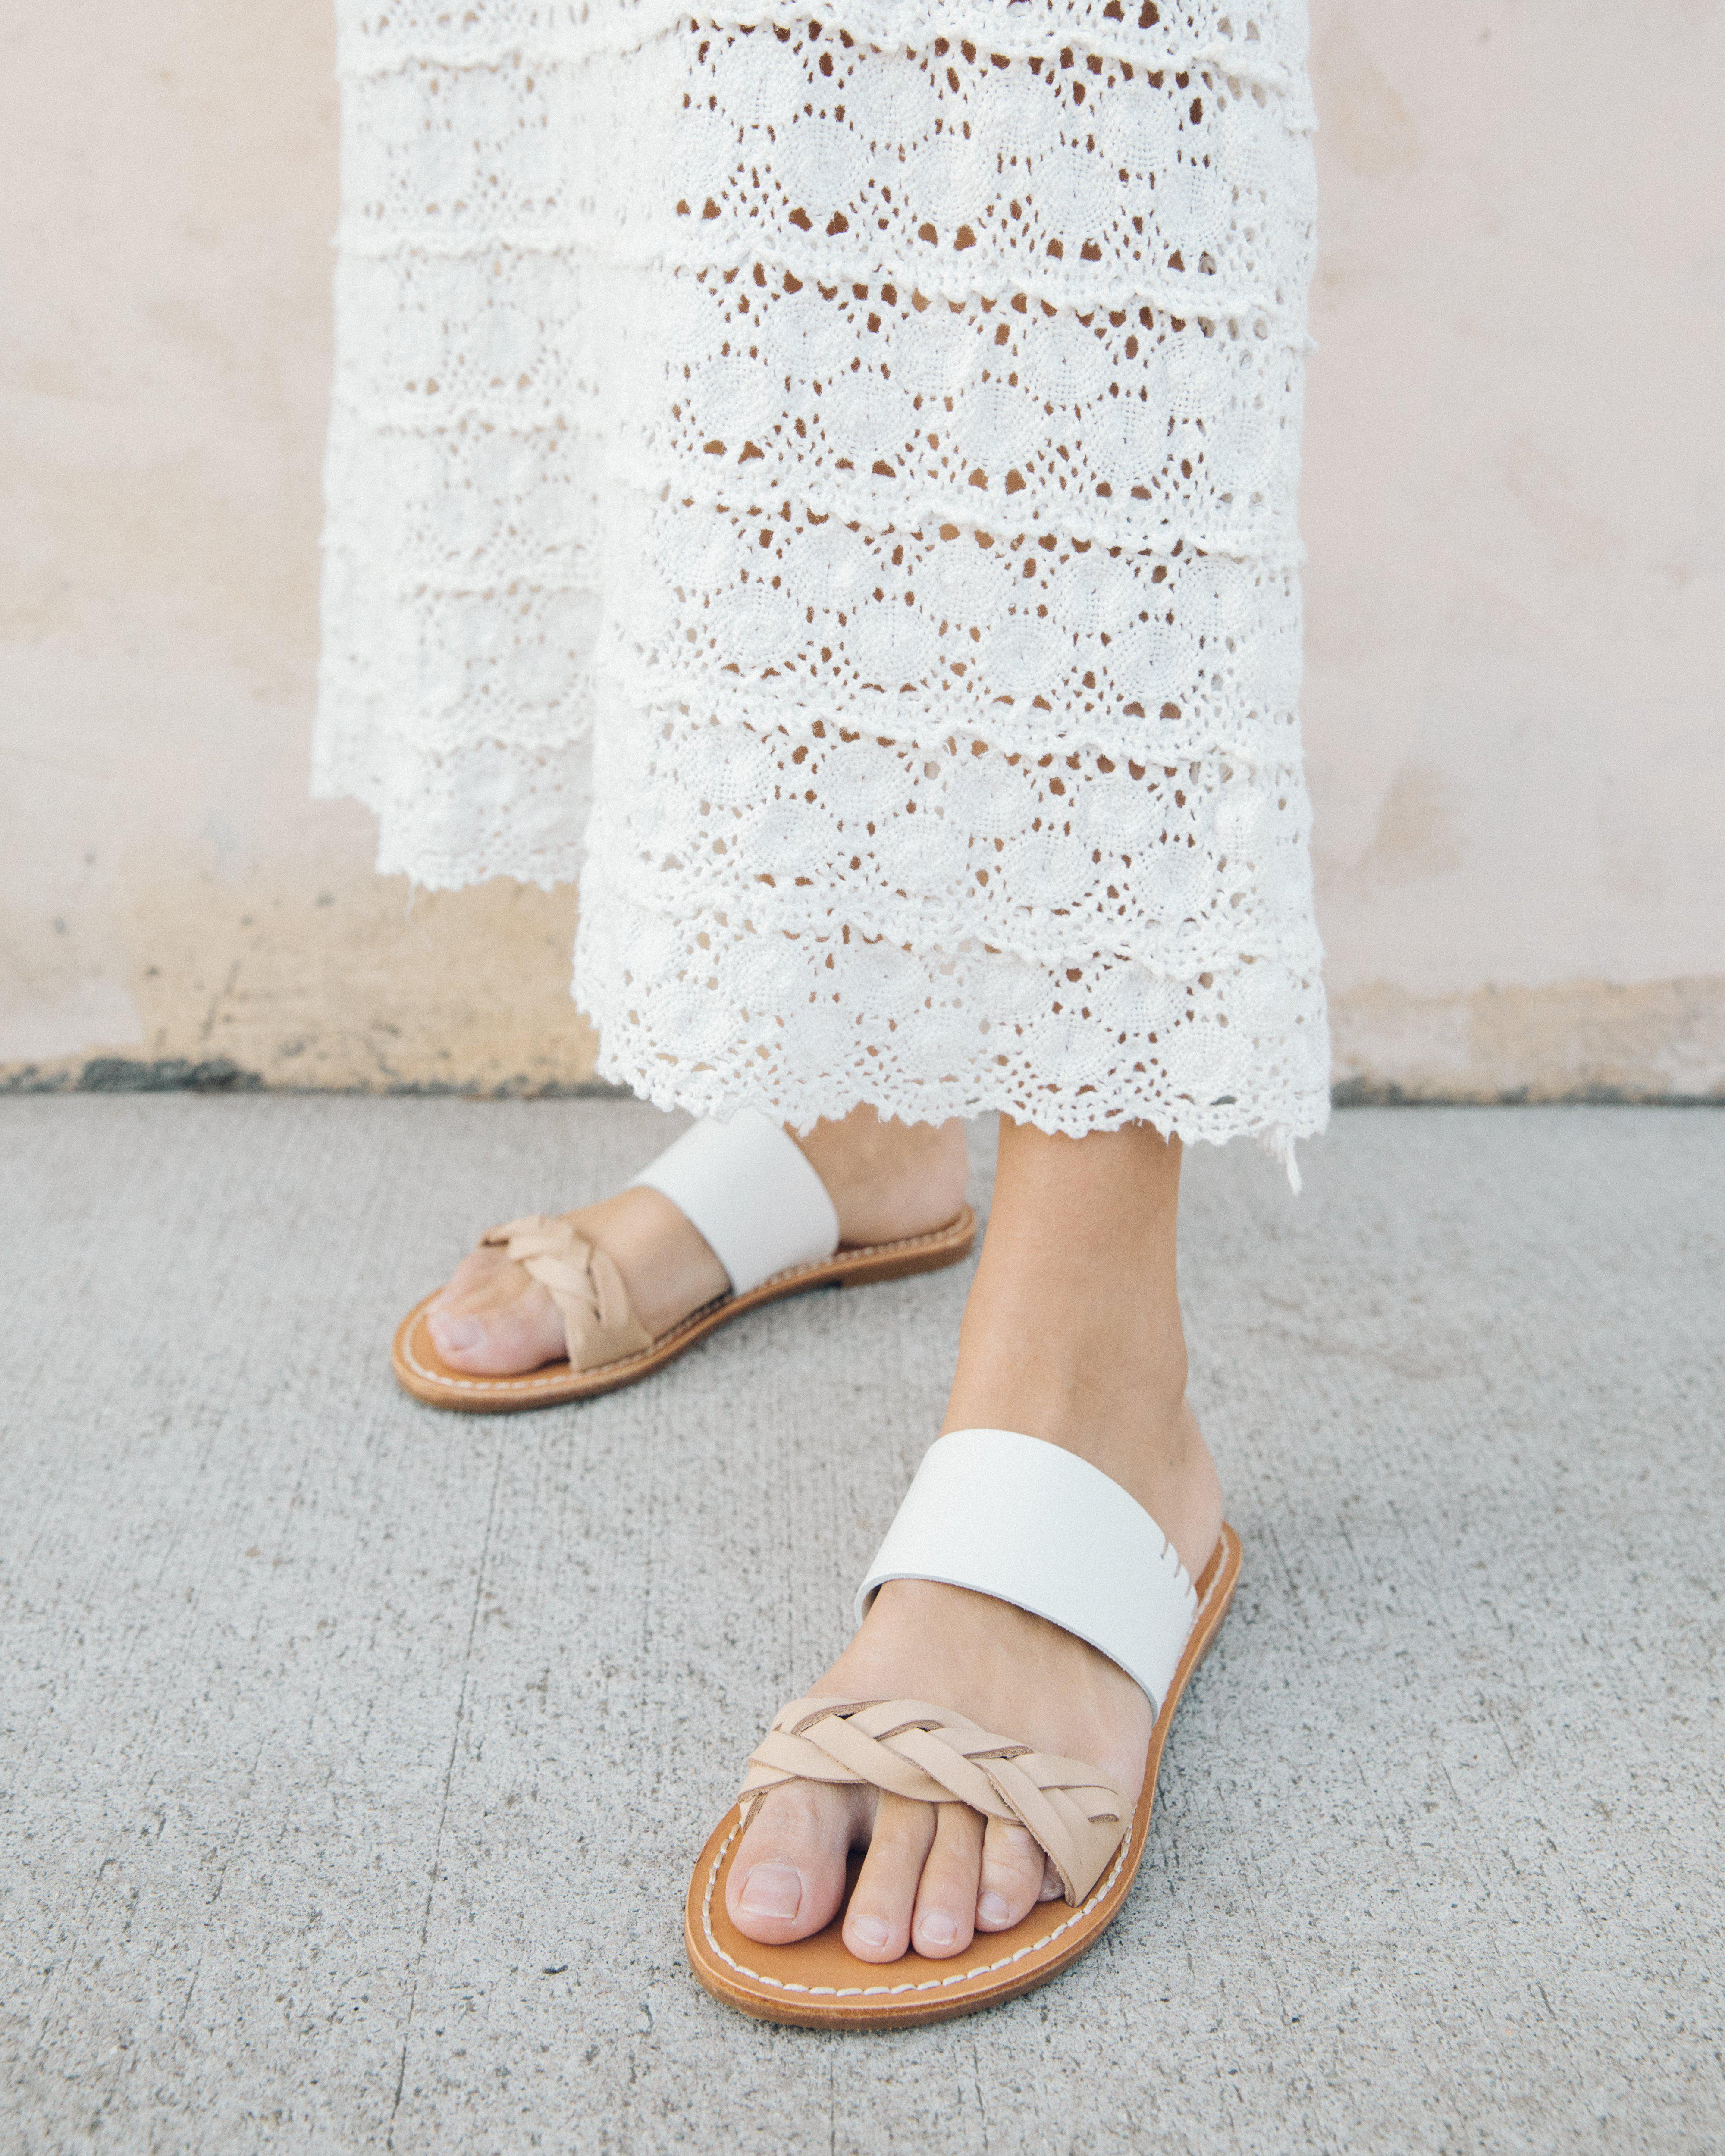 eed1b99a4766 Lyst - Soludos Braided Slide Sandal in White